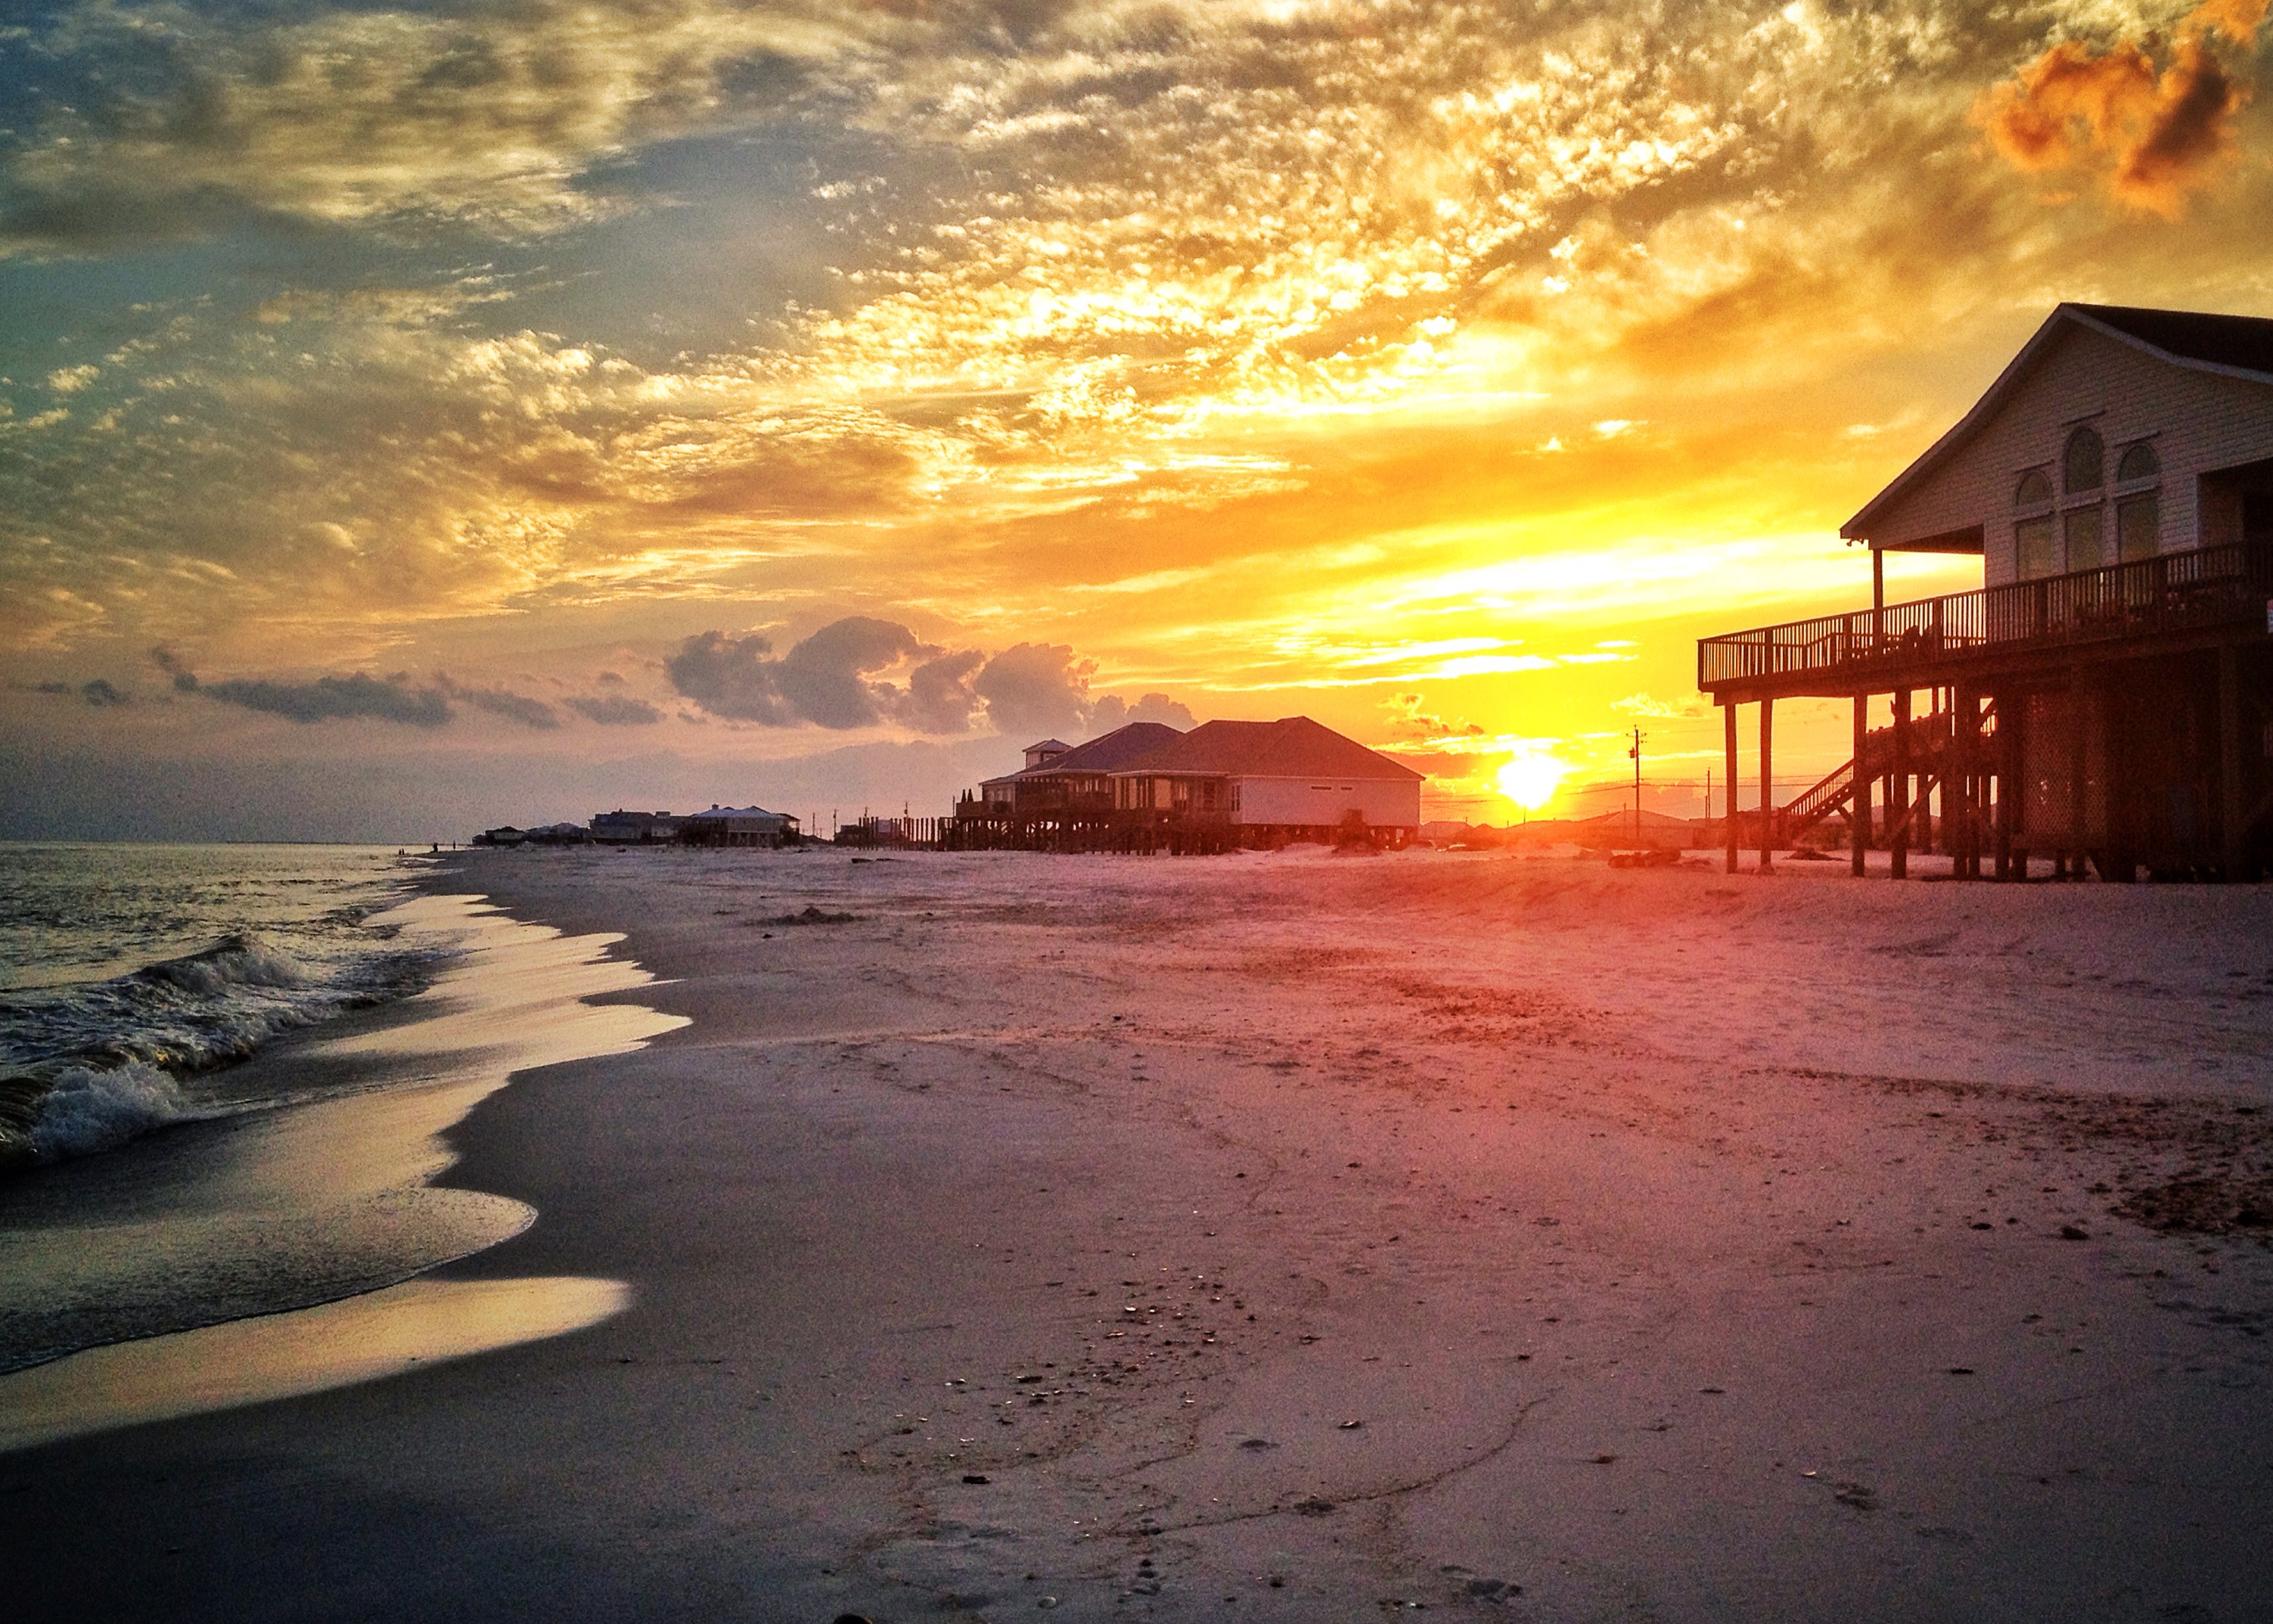 Port Royal St Dauphin Island Al Usa Sunrise Sunset Times